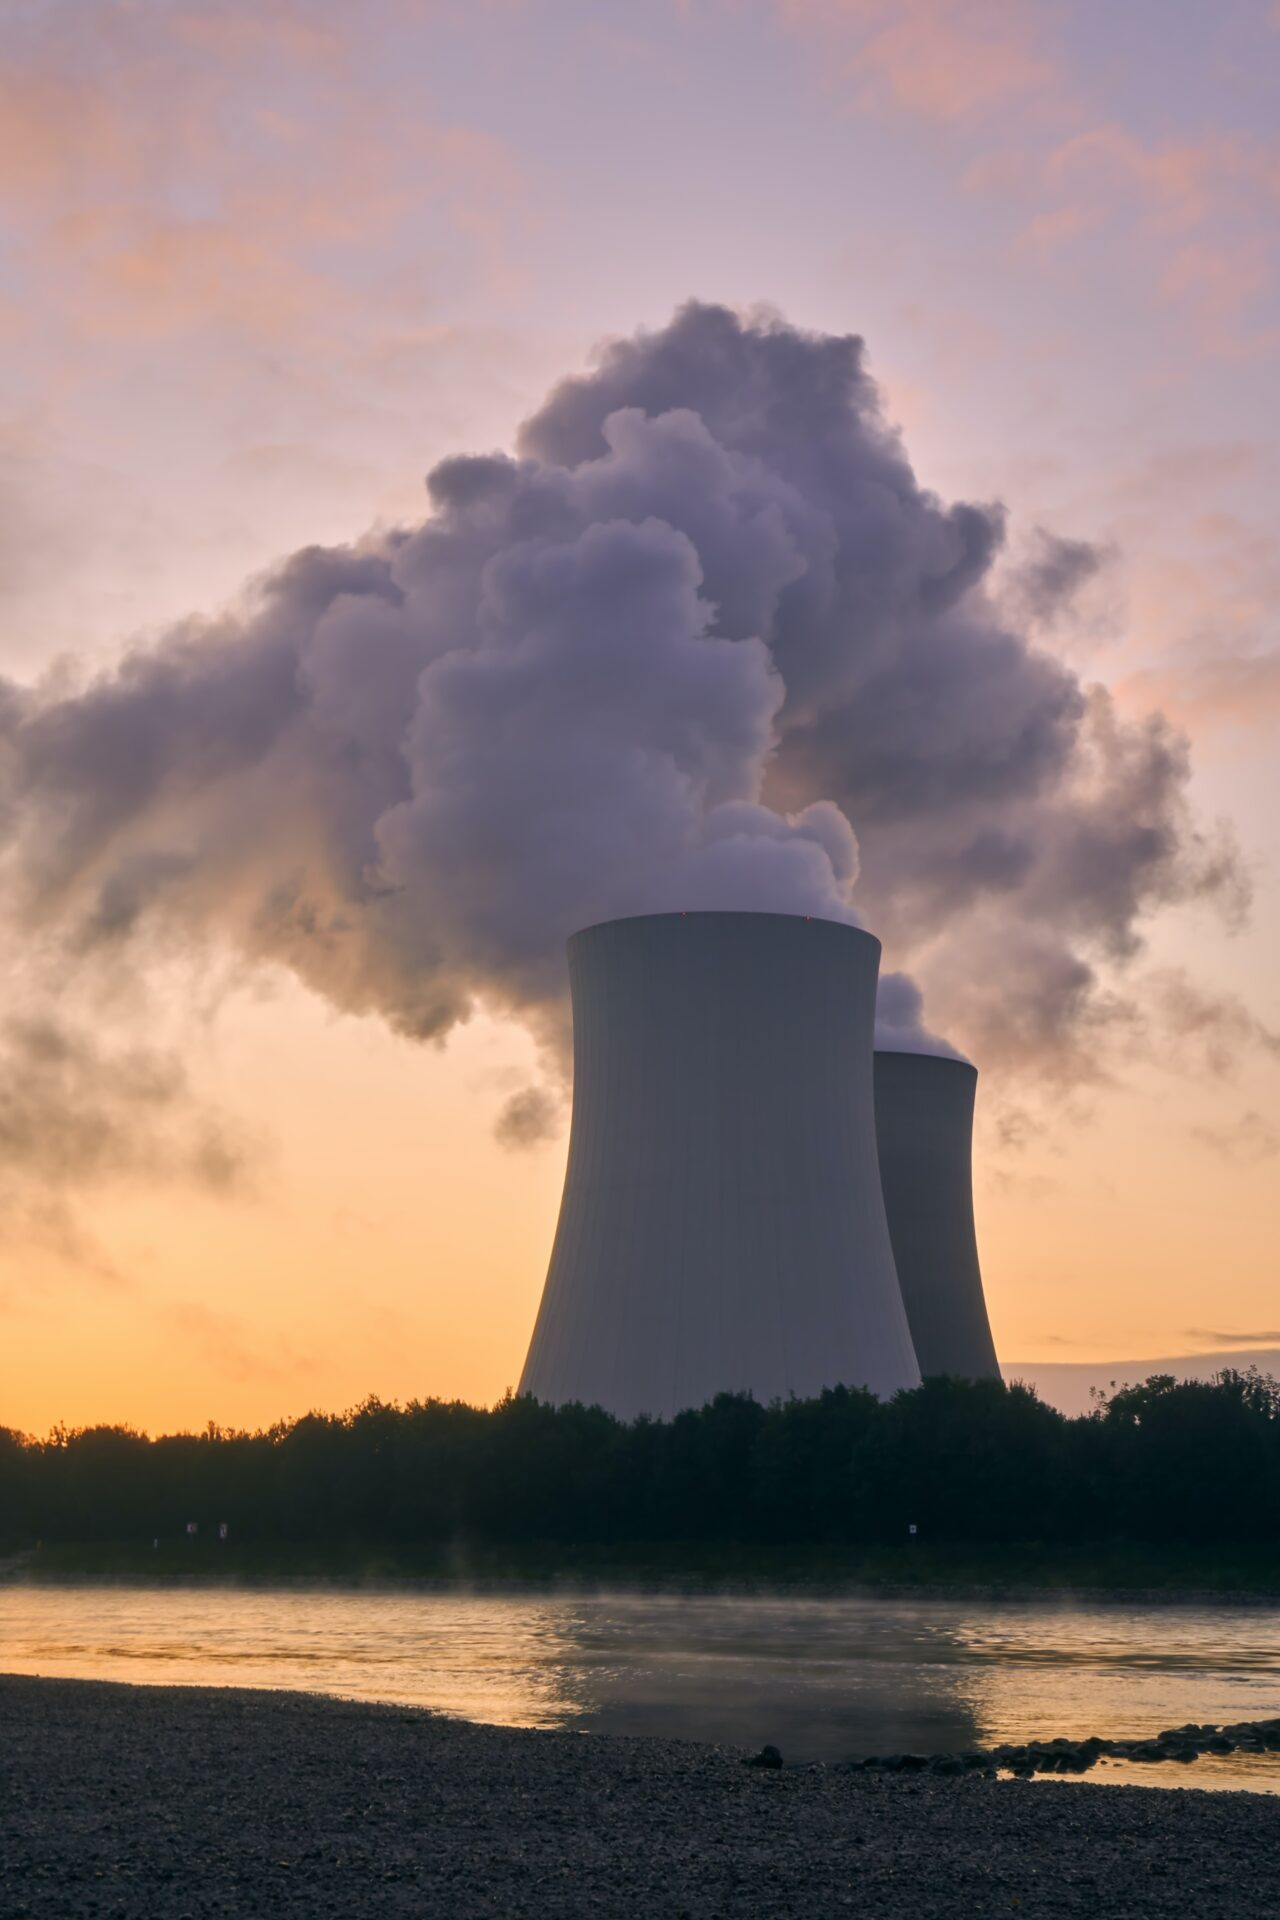 https://www.ccifrance-allemagne.fr/wp-content/uploads/2021/01/energie_centrale_nucleaire-scaled.jpg